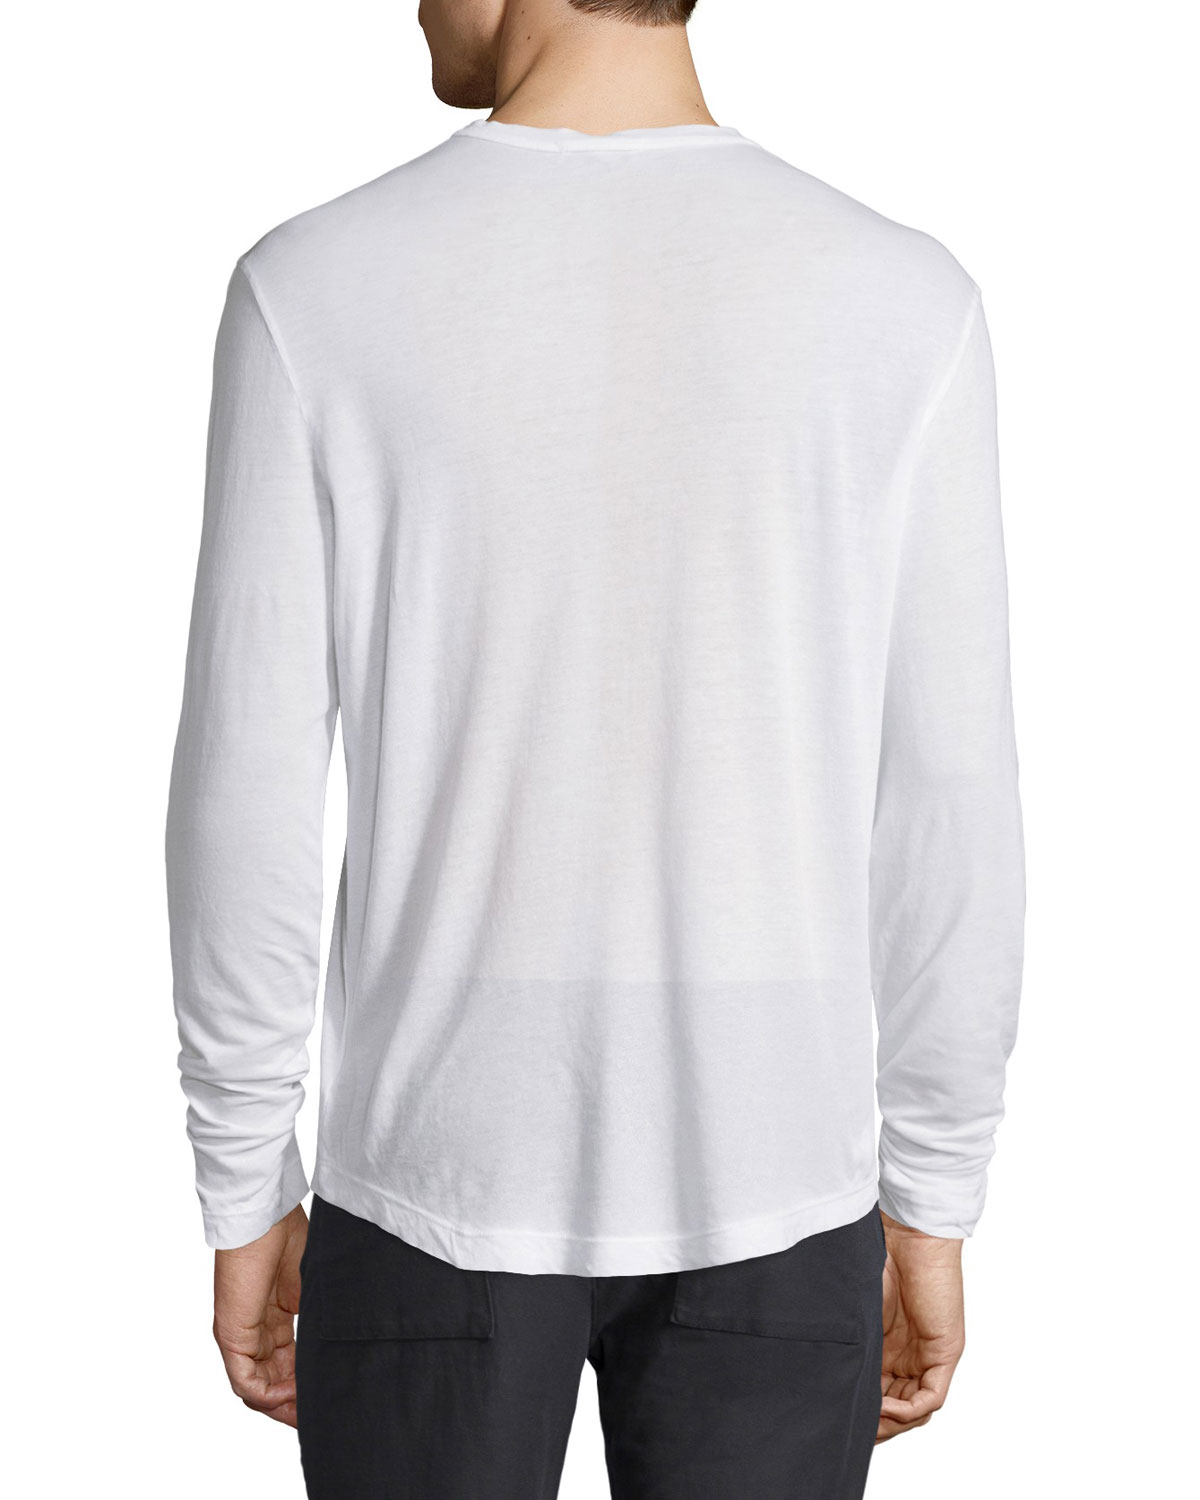 James perse long sleeve knit henley shirt in white for men for James perse henley shirt